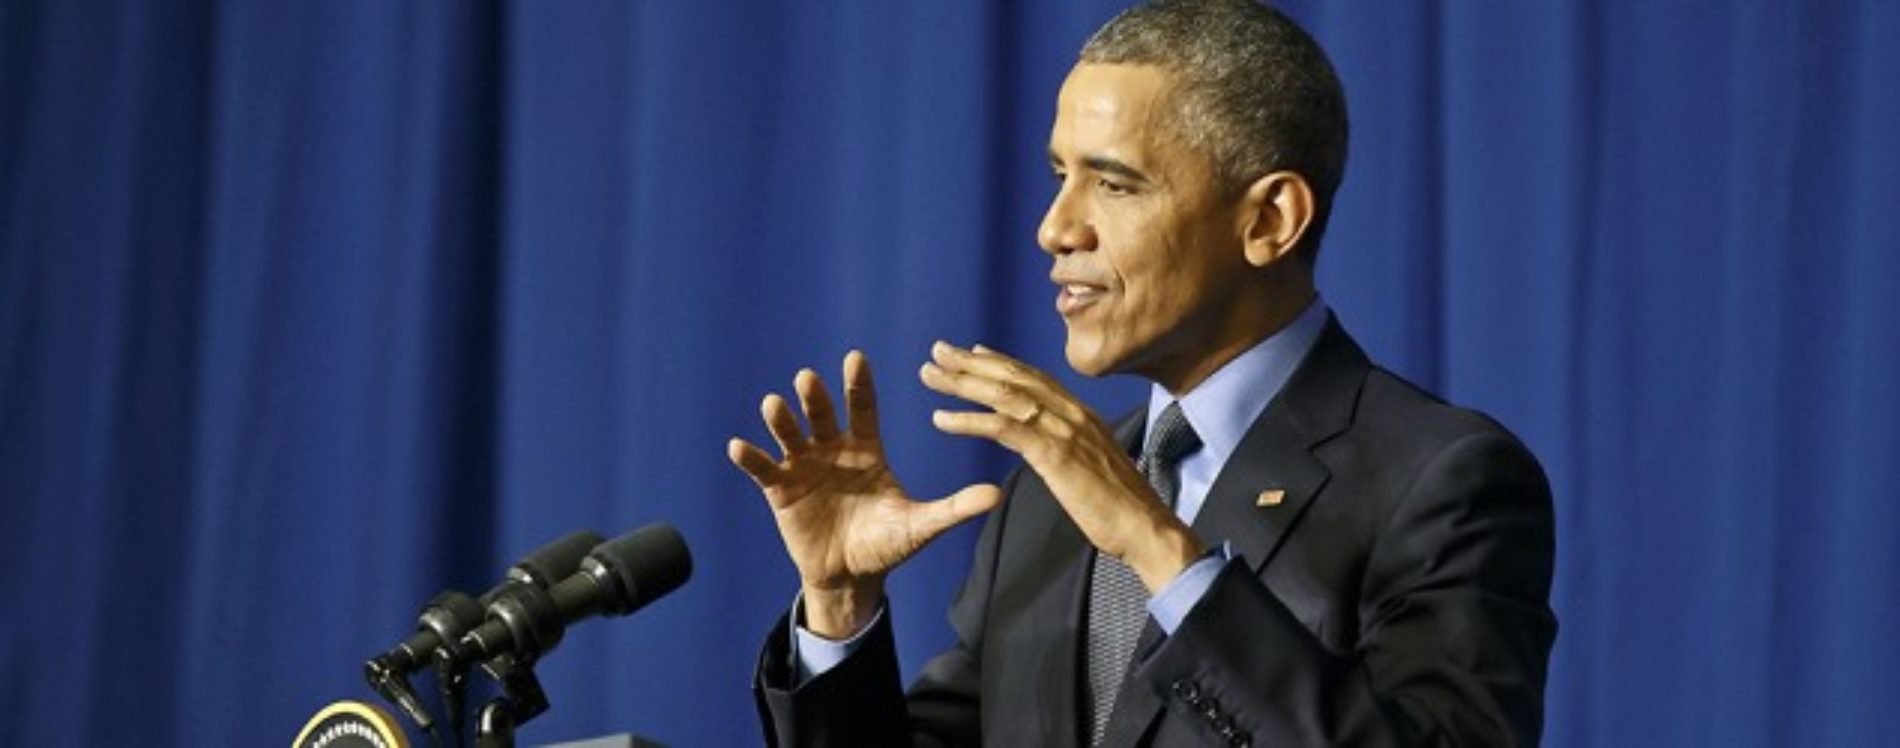 President Obama speaks out against violence targeted at gays and others in UN speech